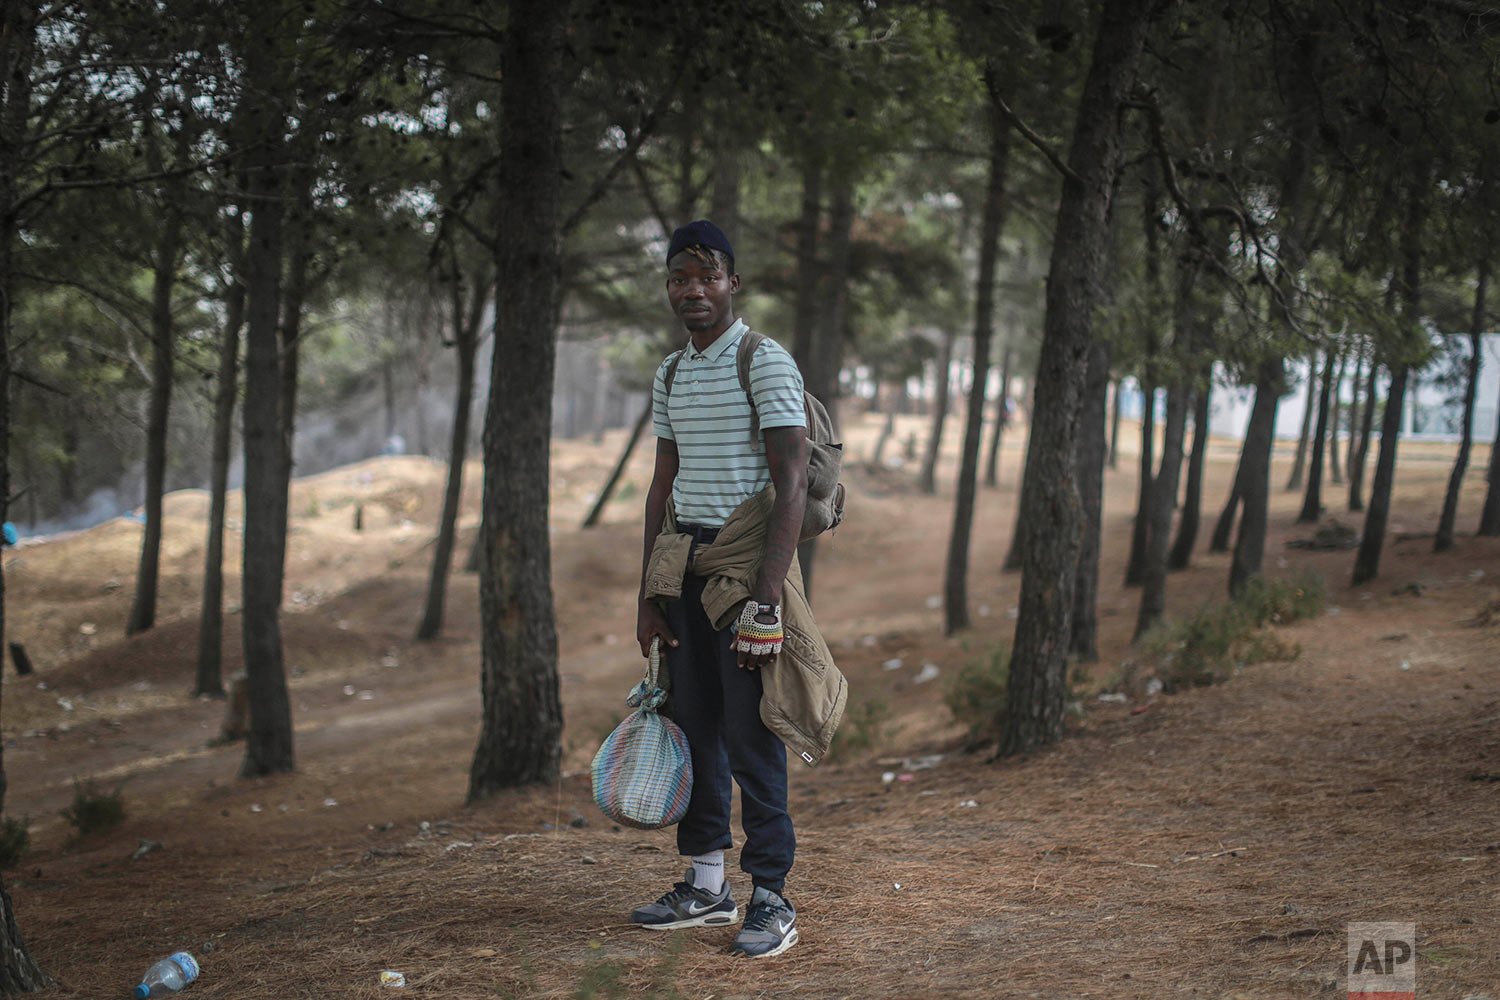 Alex Brandan, a Cameroonian migrant, poses for a portrait as he takes shelter in a forest near Masnana, Sept. 8, 2018, on the outskirts of Tangier, Morocco. (AP Photo/Mosa'ab Elshamy)